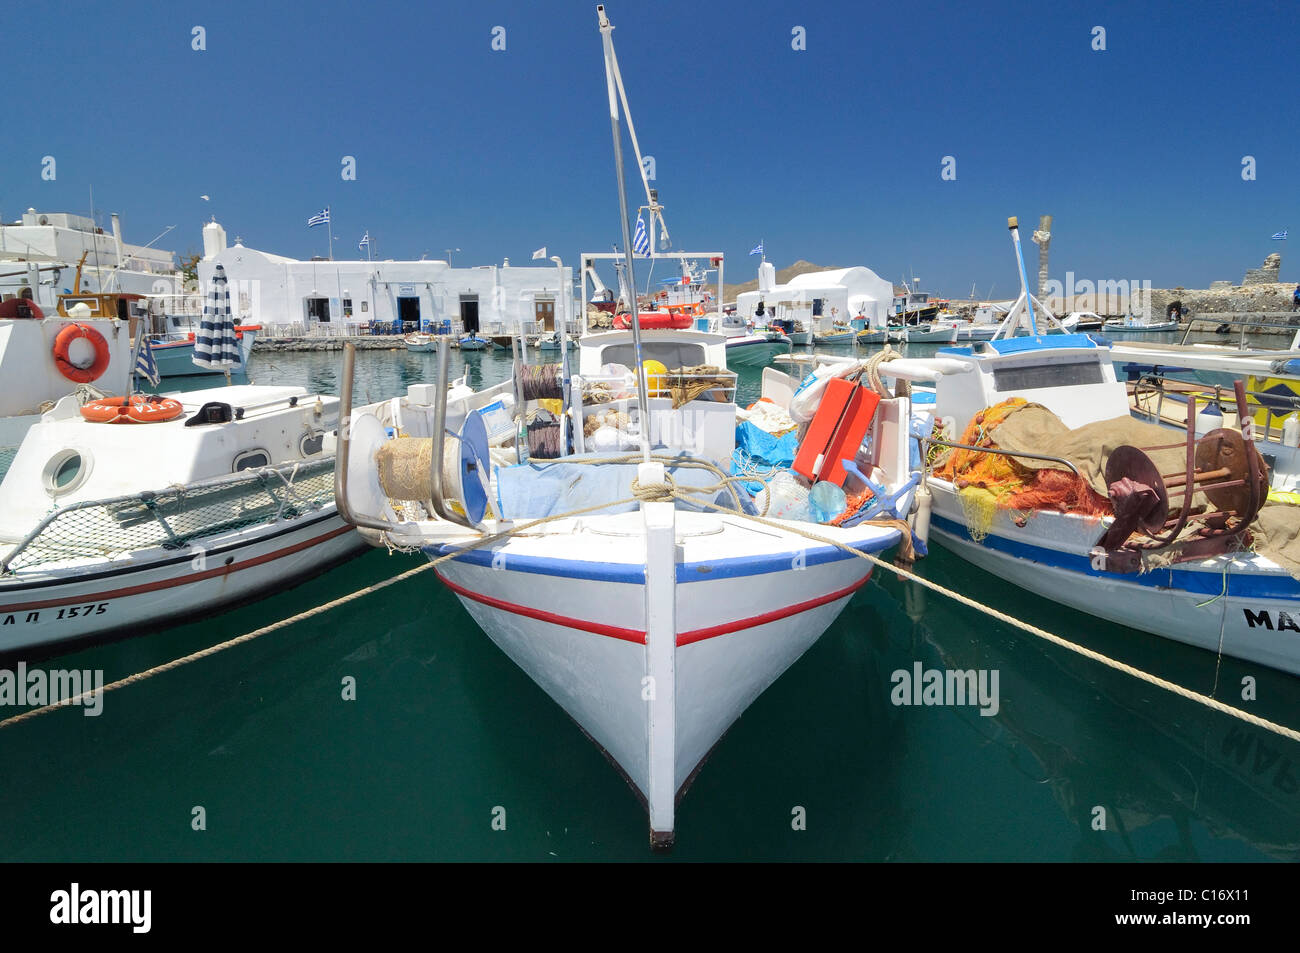 Fishing boats in the port of Naoussa, Paros, Cyclades, Griechenland, Europa Stock Photo